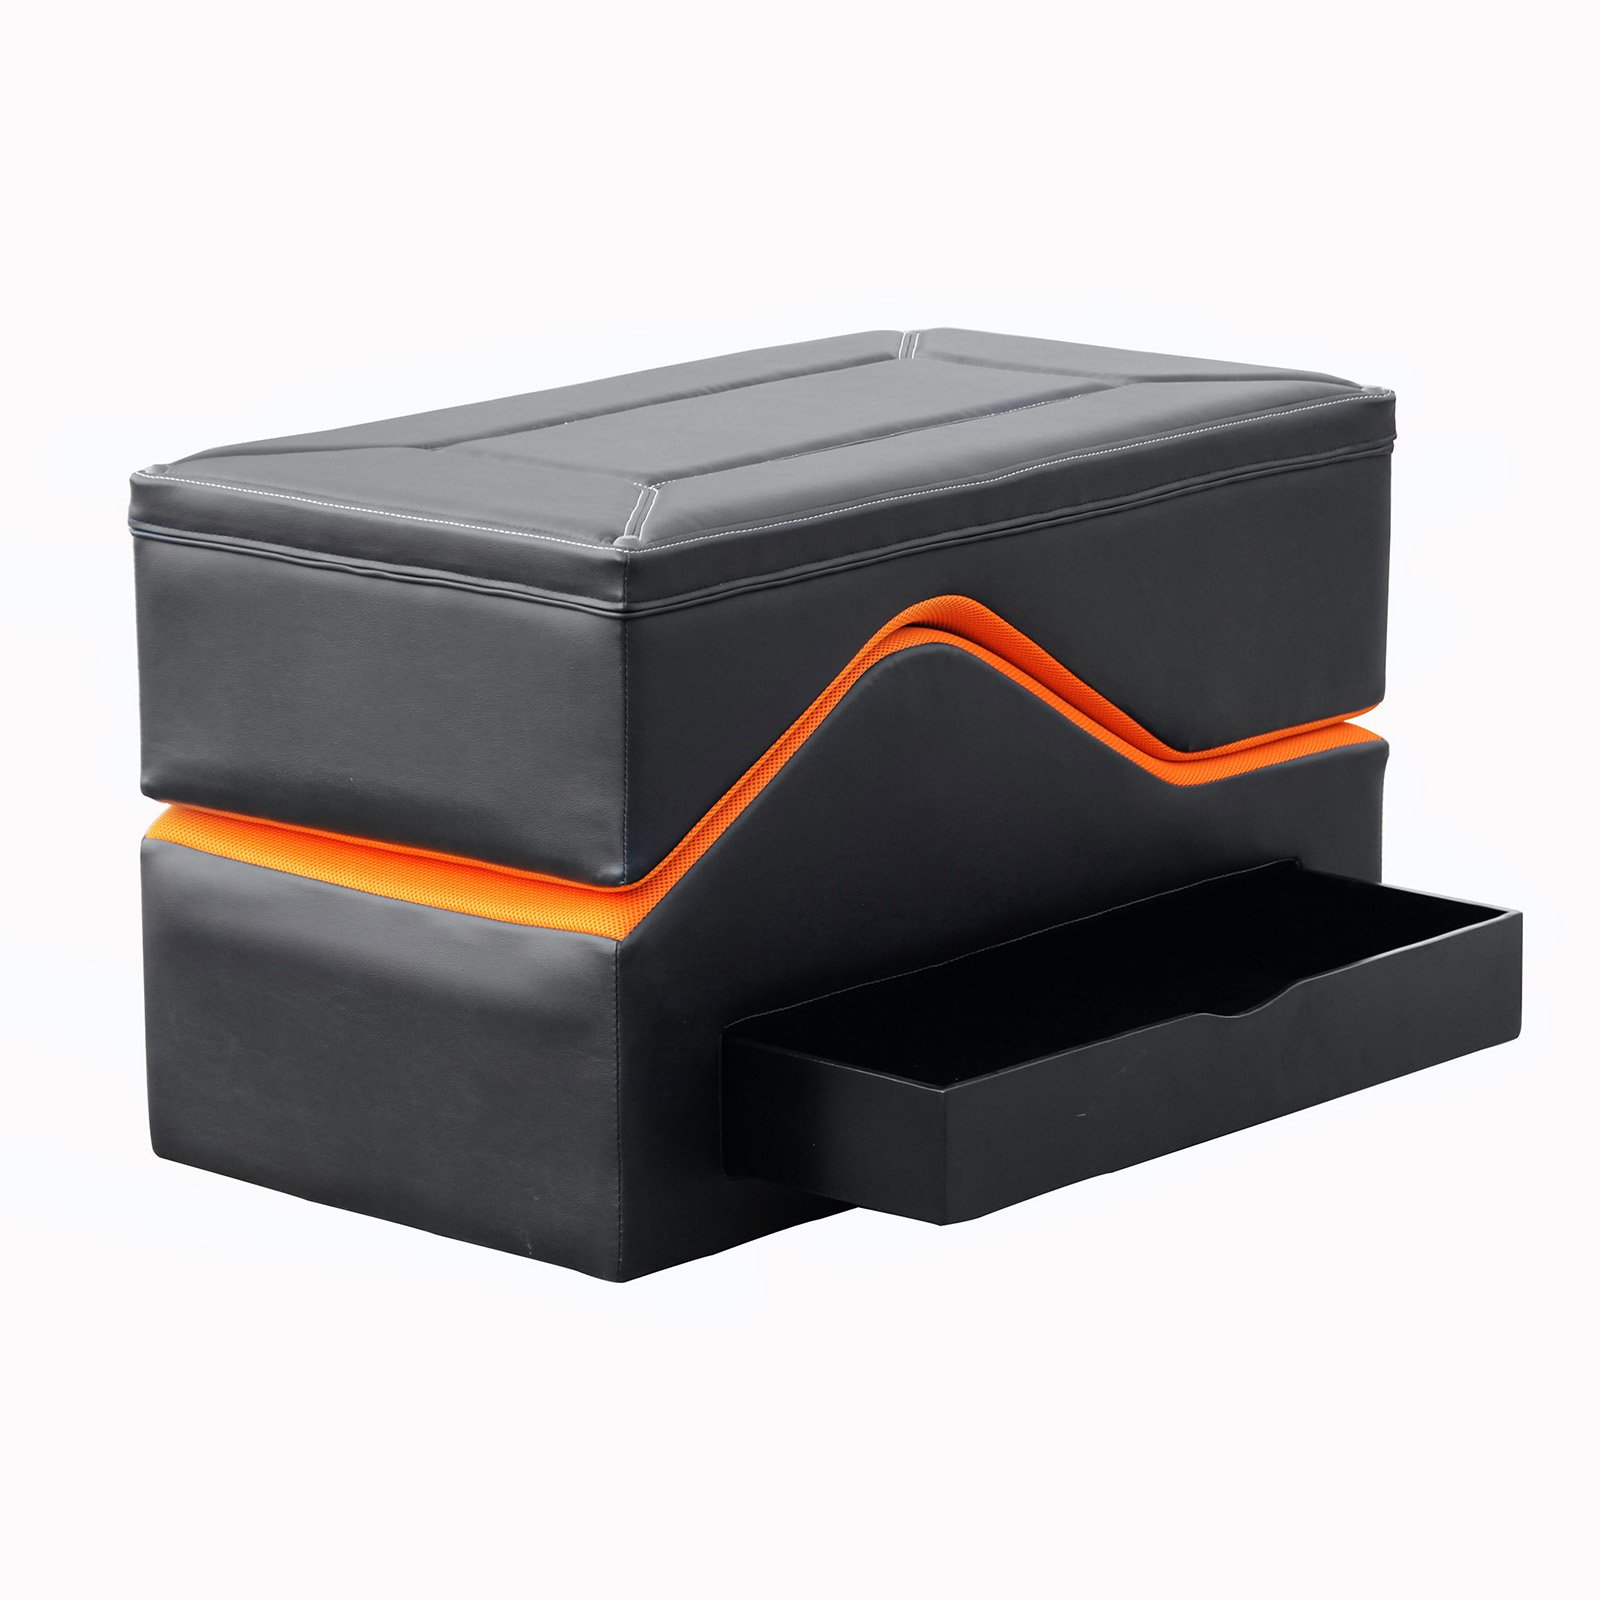 X Video Rocker 2-Piece Modern Lounging Ottoman with Storage, Black/Orange, 0150901